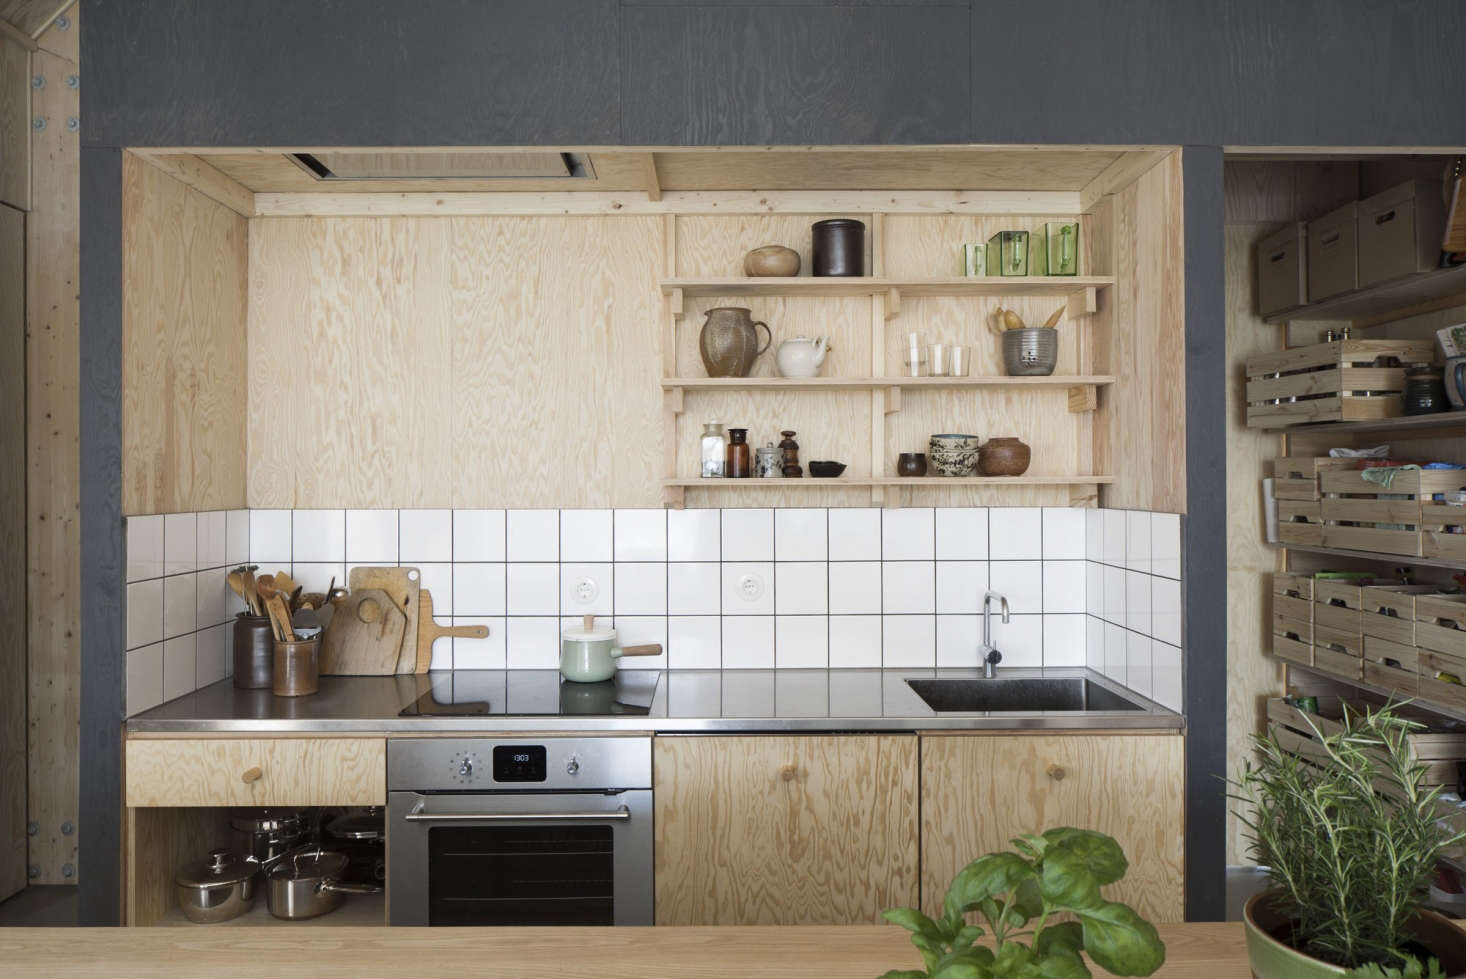 An inset plywood backsplash, shelves, and cabinetry in A Cost-Conscious House in Sweden That's a Pinterest Sensation.